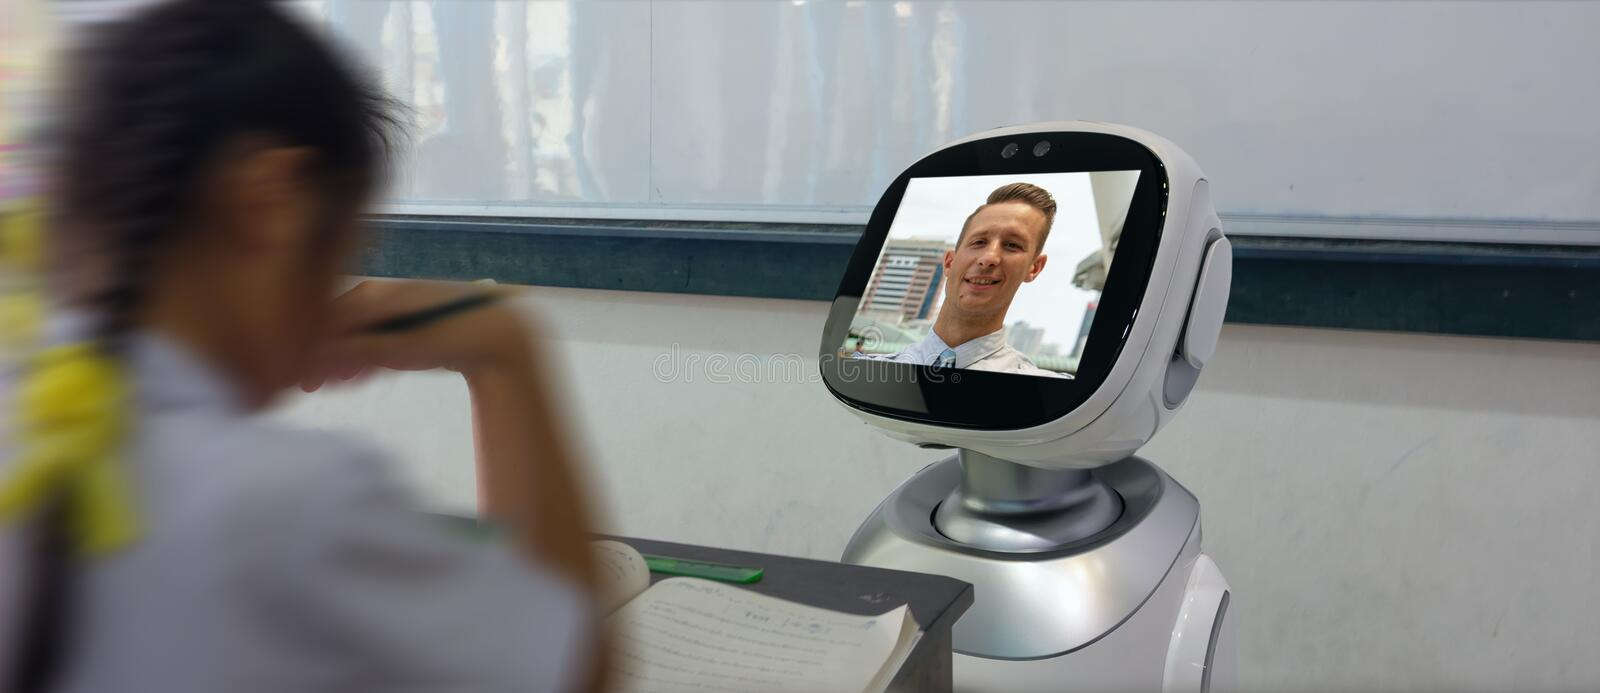 Smart education industry futuristic concept, robotic assistant with artificial intelligence program in future use for teaching stu royalty free stock photo